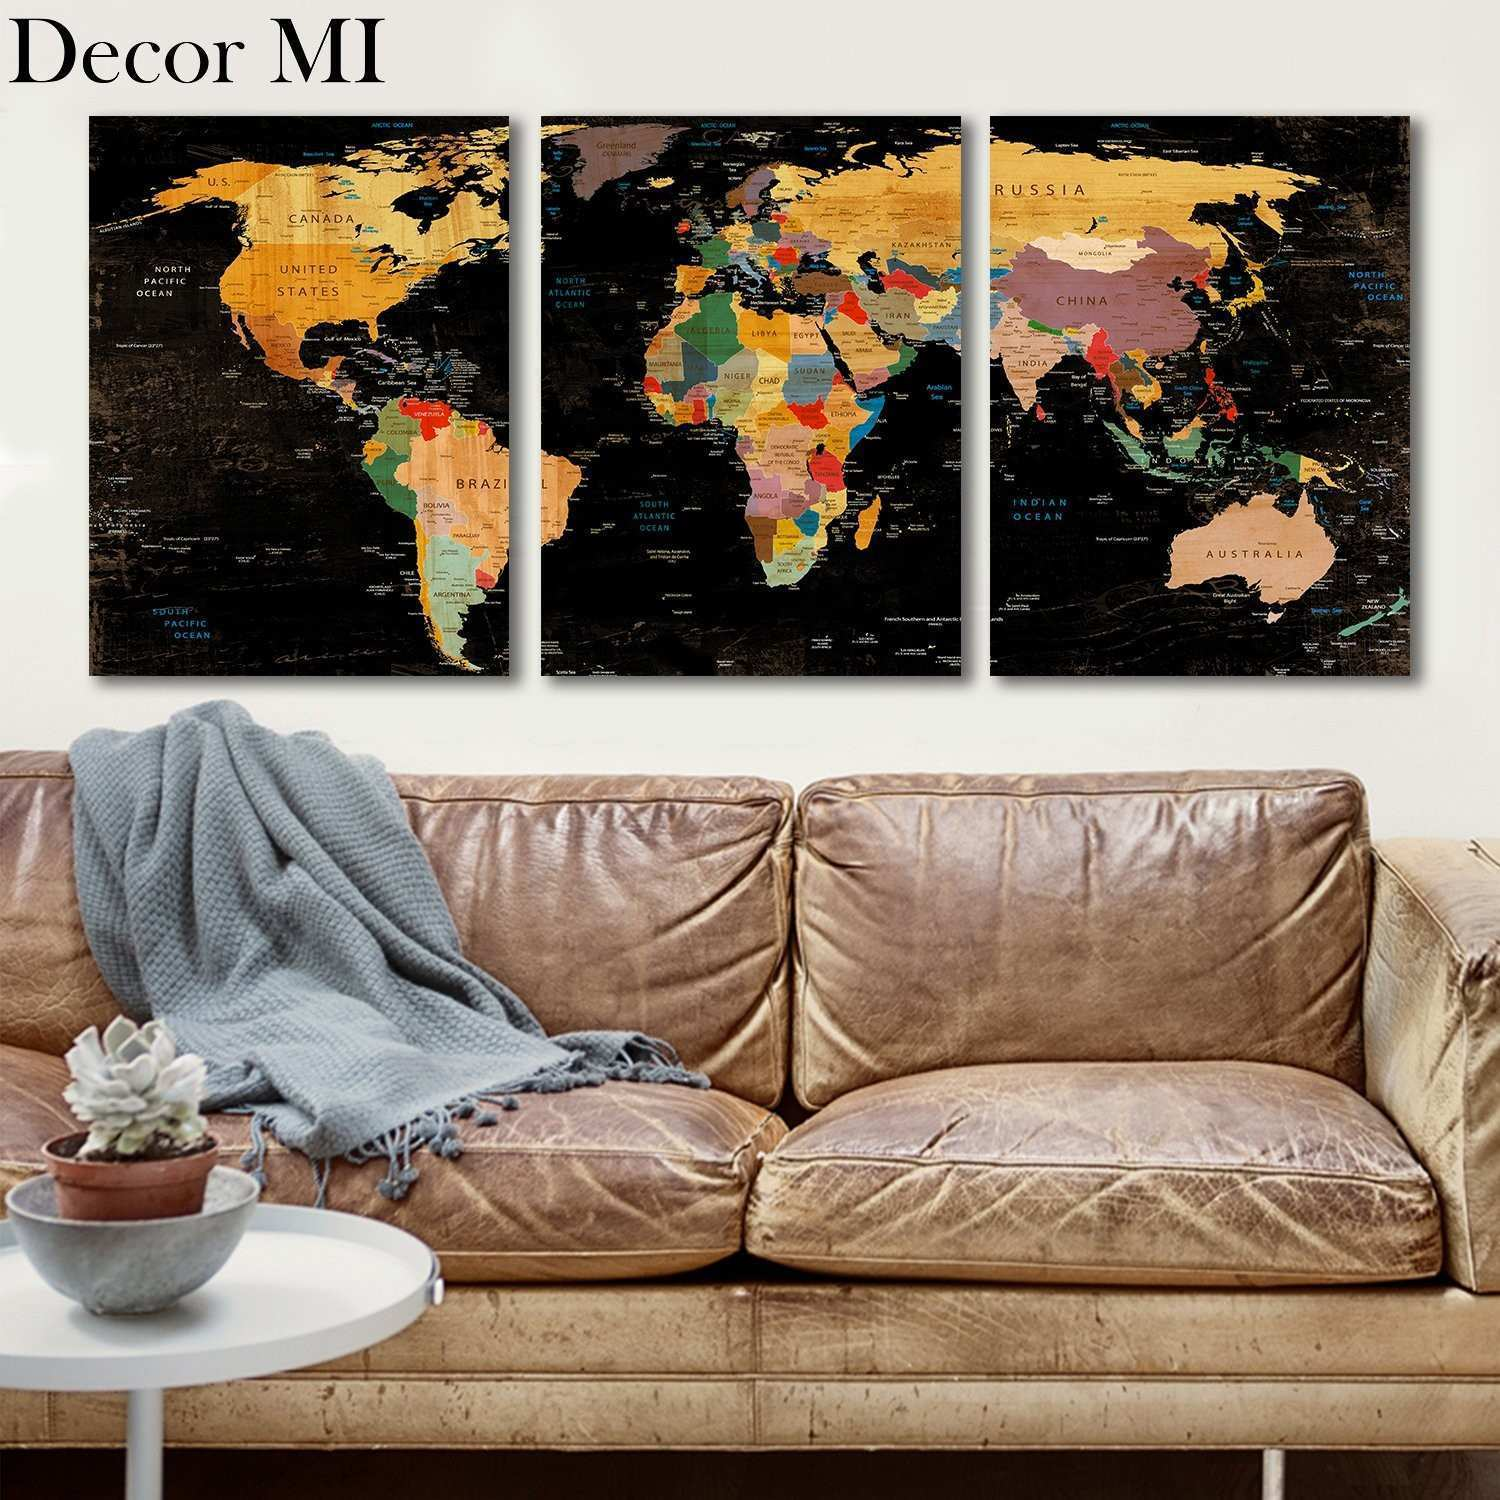 Oversized framed wall art inspirational vintage style world map oversized framed wall art inspirational vintage style world map framed wall decor pier 1 imports within gumiabroncs Gallery